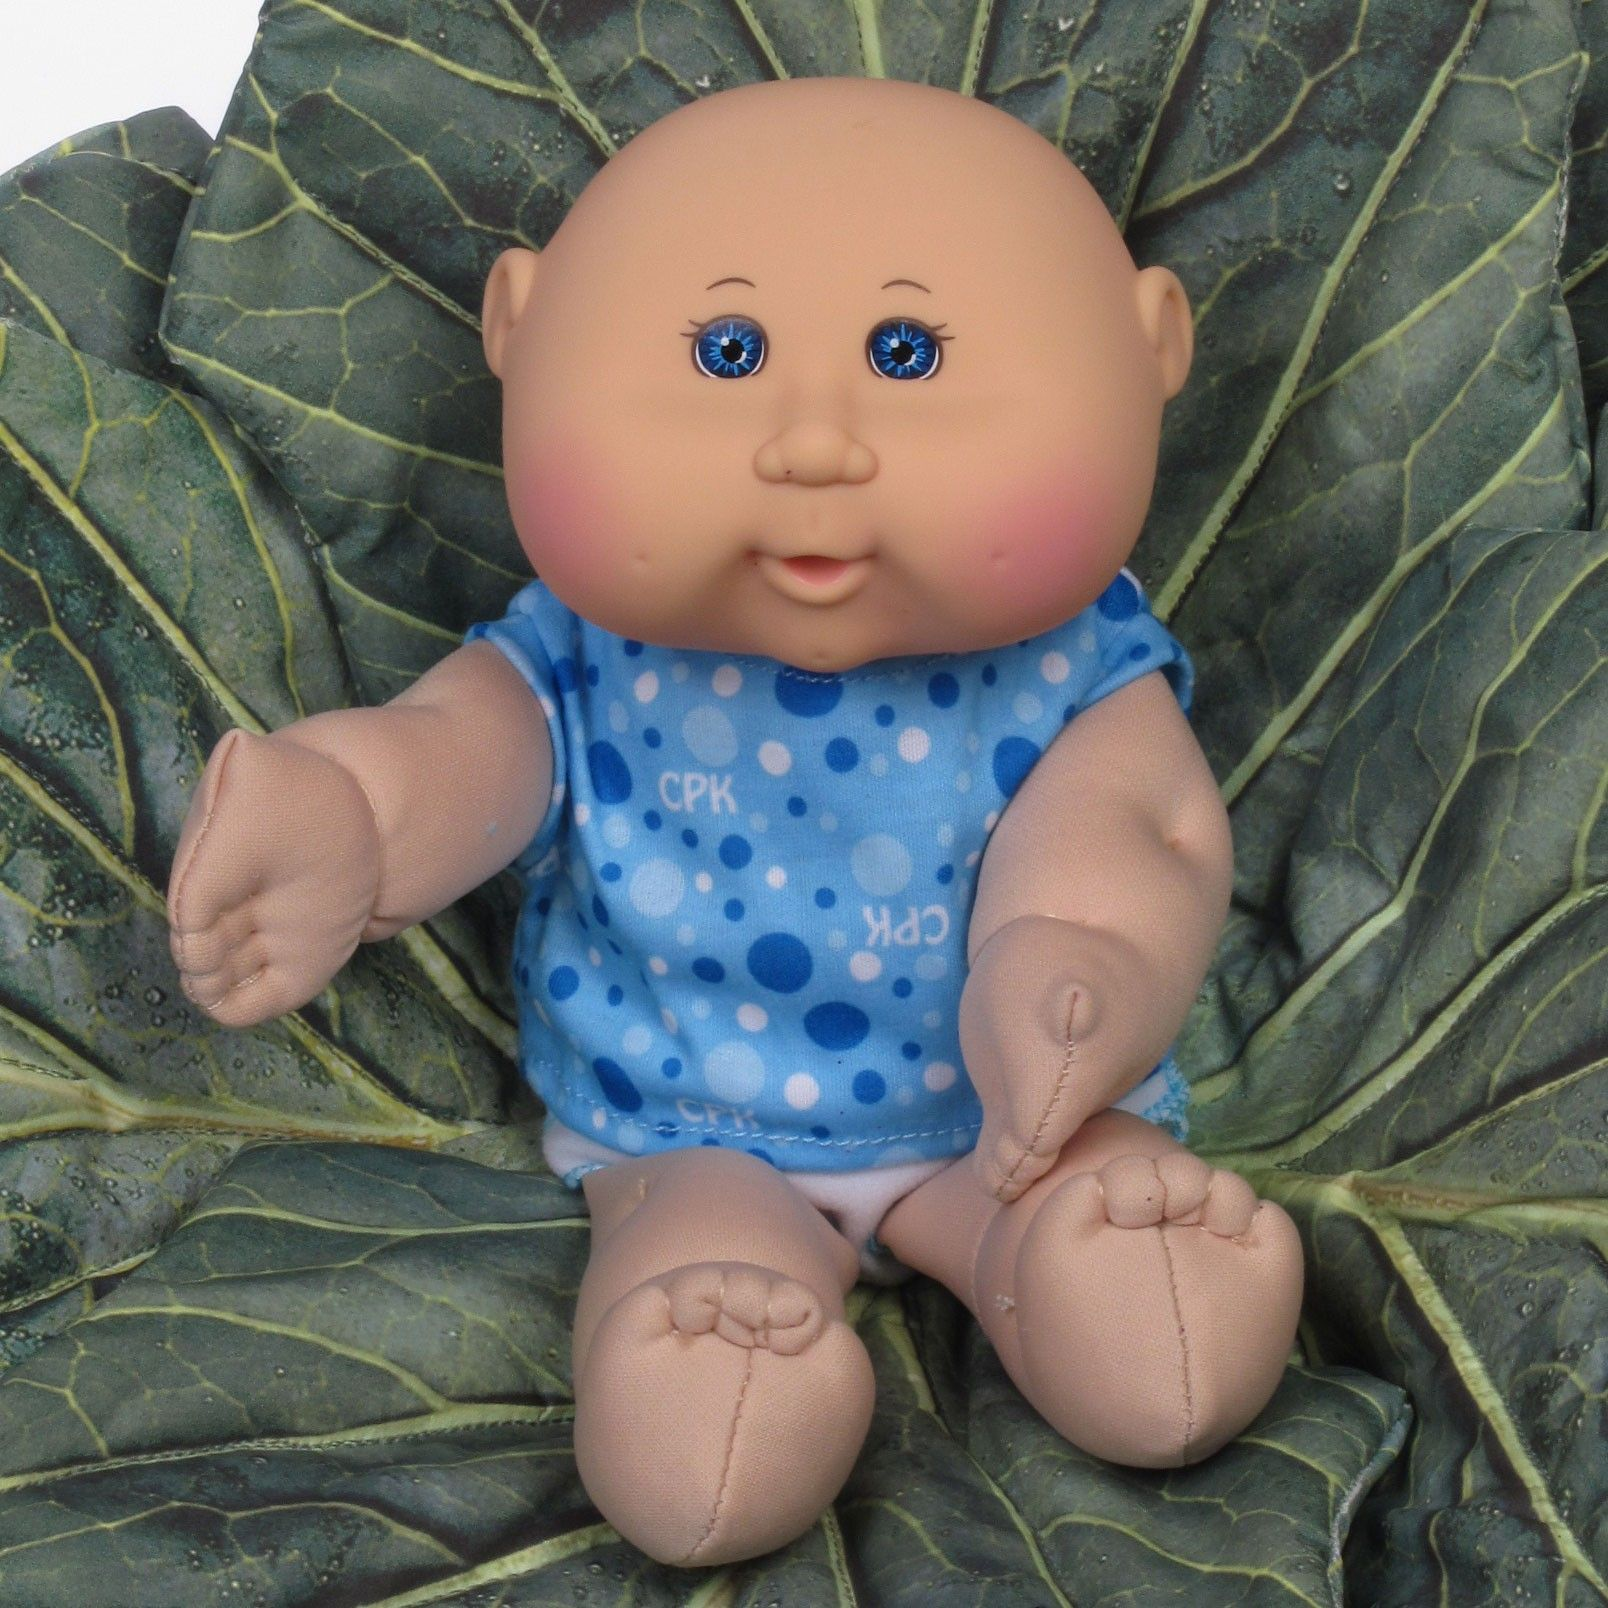 Cpk Newborns Toy Newborns 11 Inches Tall Toys Accessories Boy Cabbage Patch Dolls Cabbage Patch Babies Bitty Baby Clothes